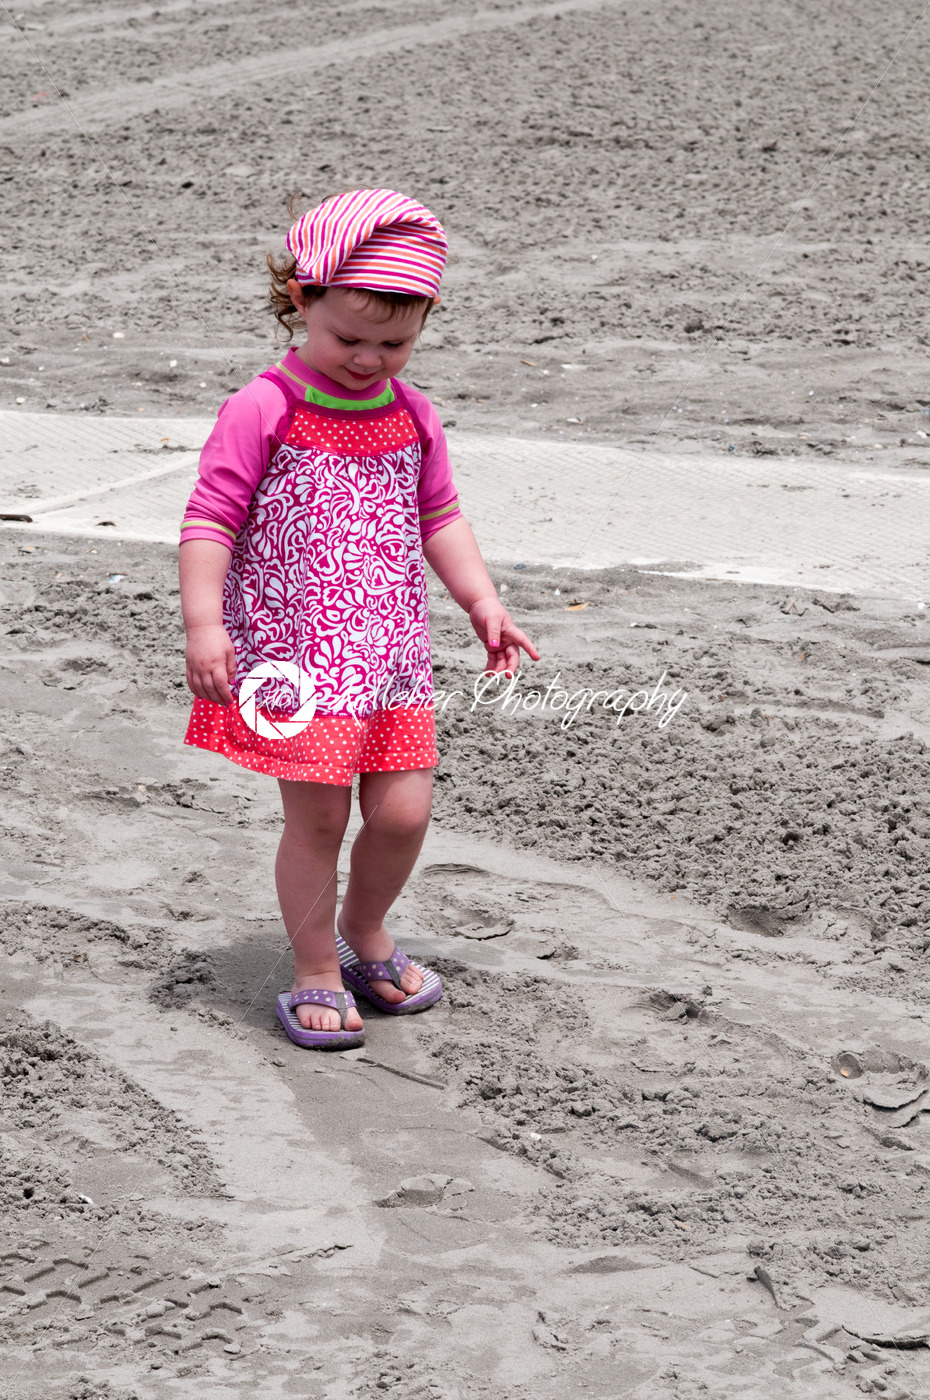 Young little girl playing with the sand and building sandcastle at the beach near the sea. - Kelleher Photography Store